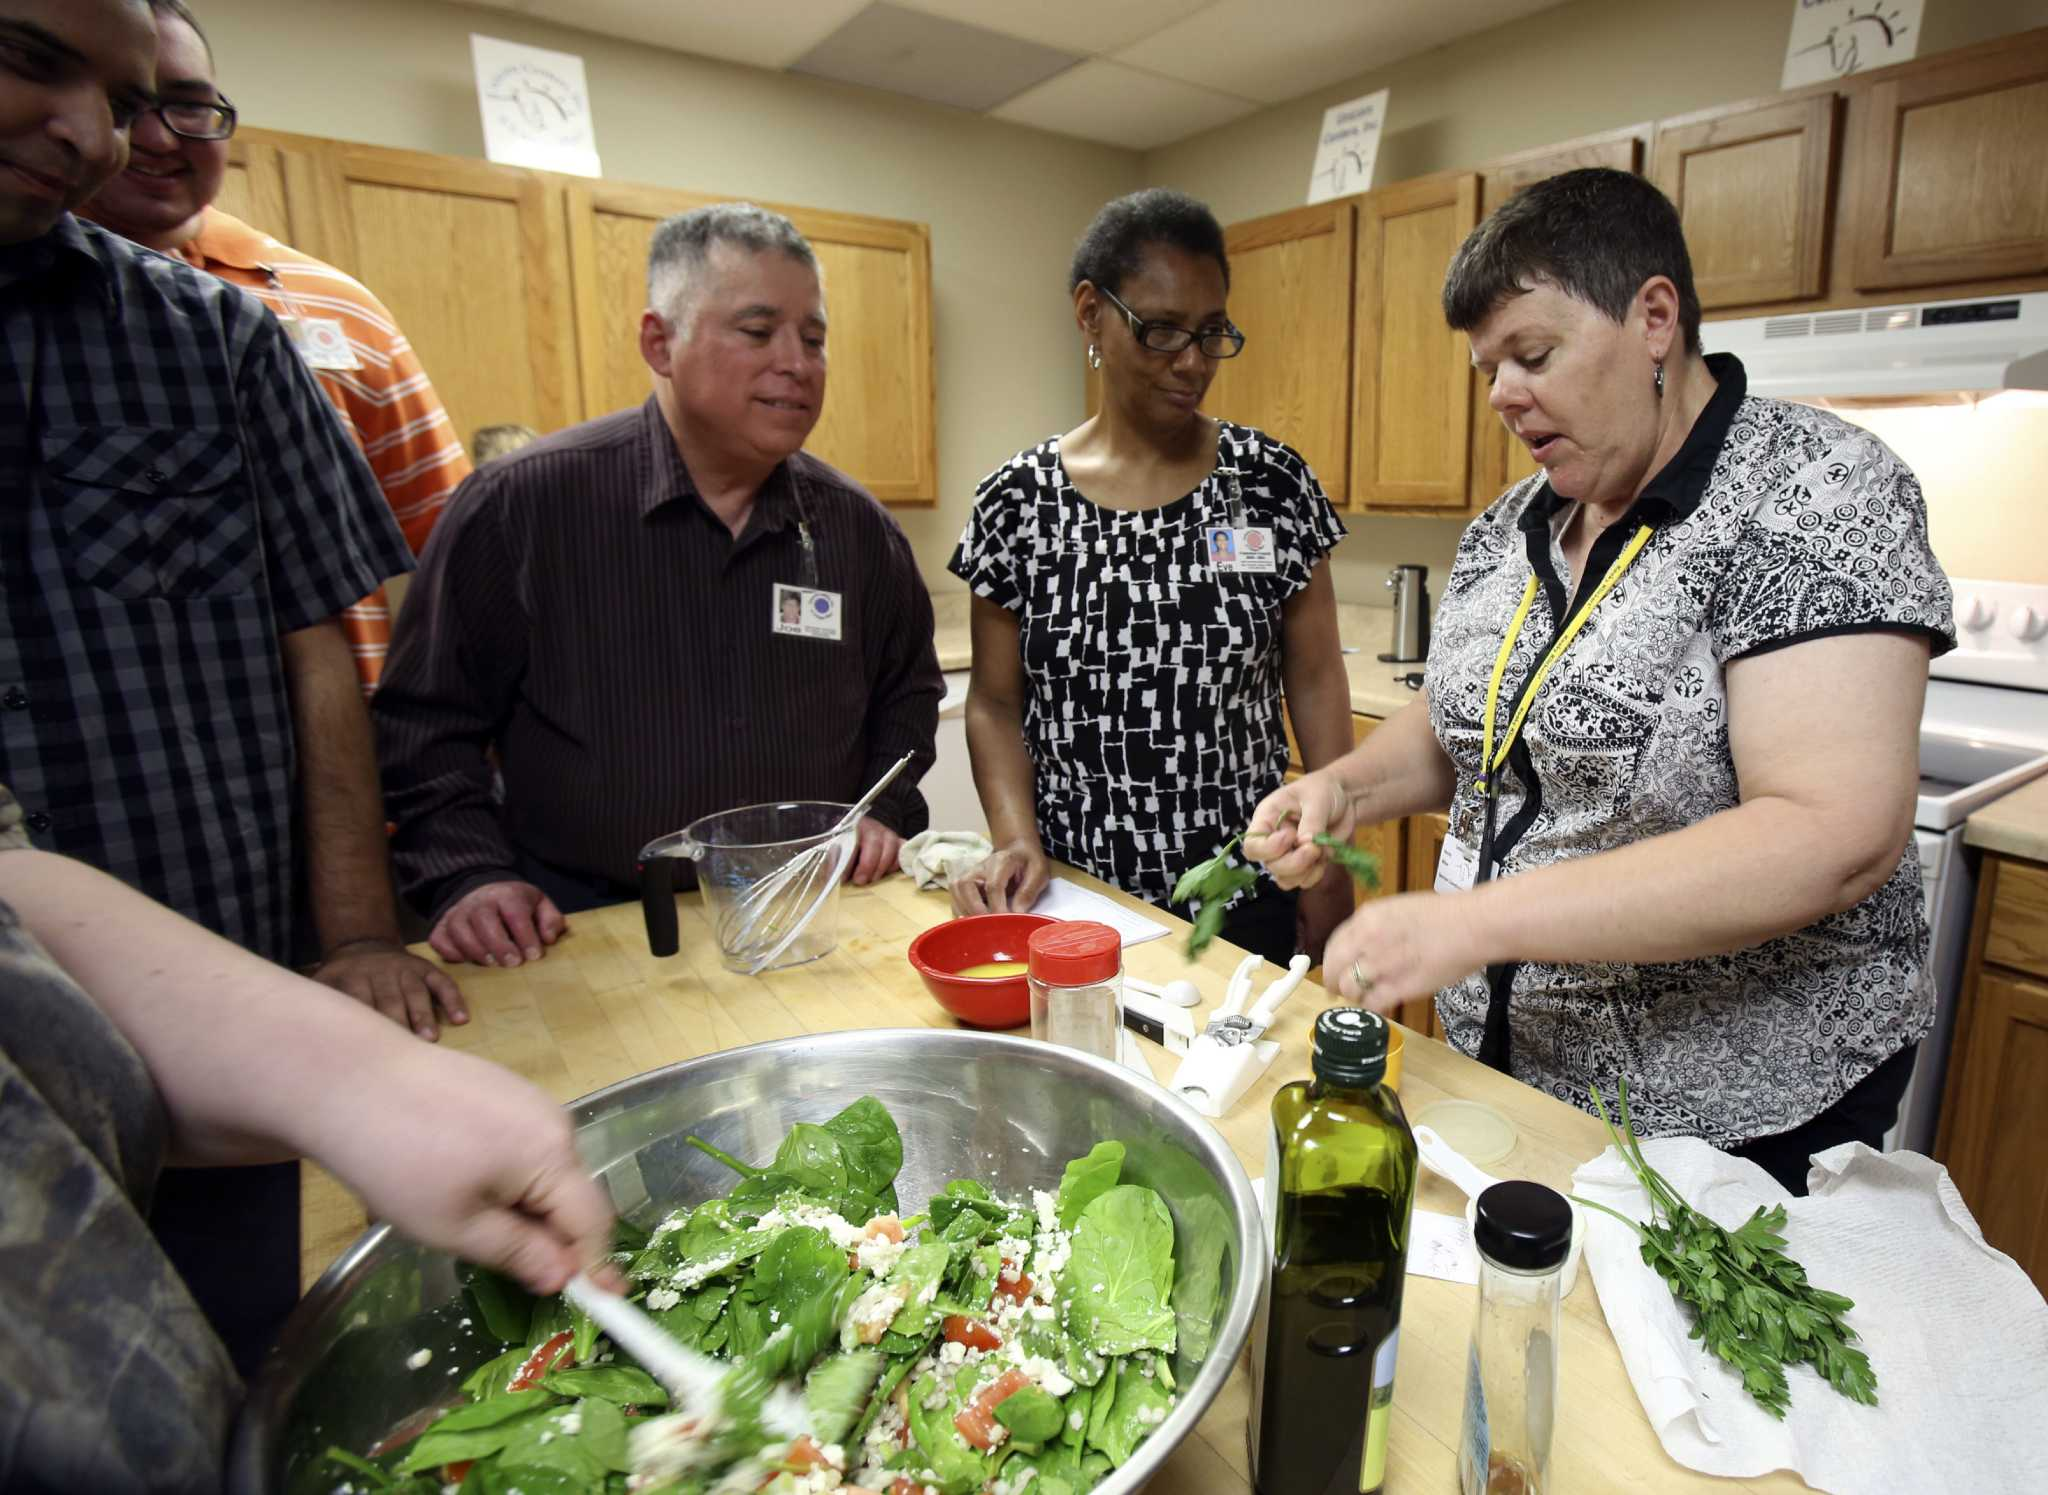 Adults With Disabilities Develop Life Skills Through